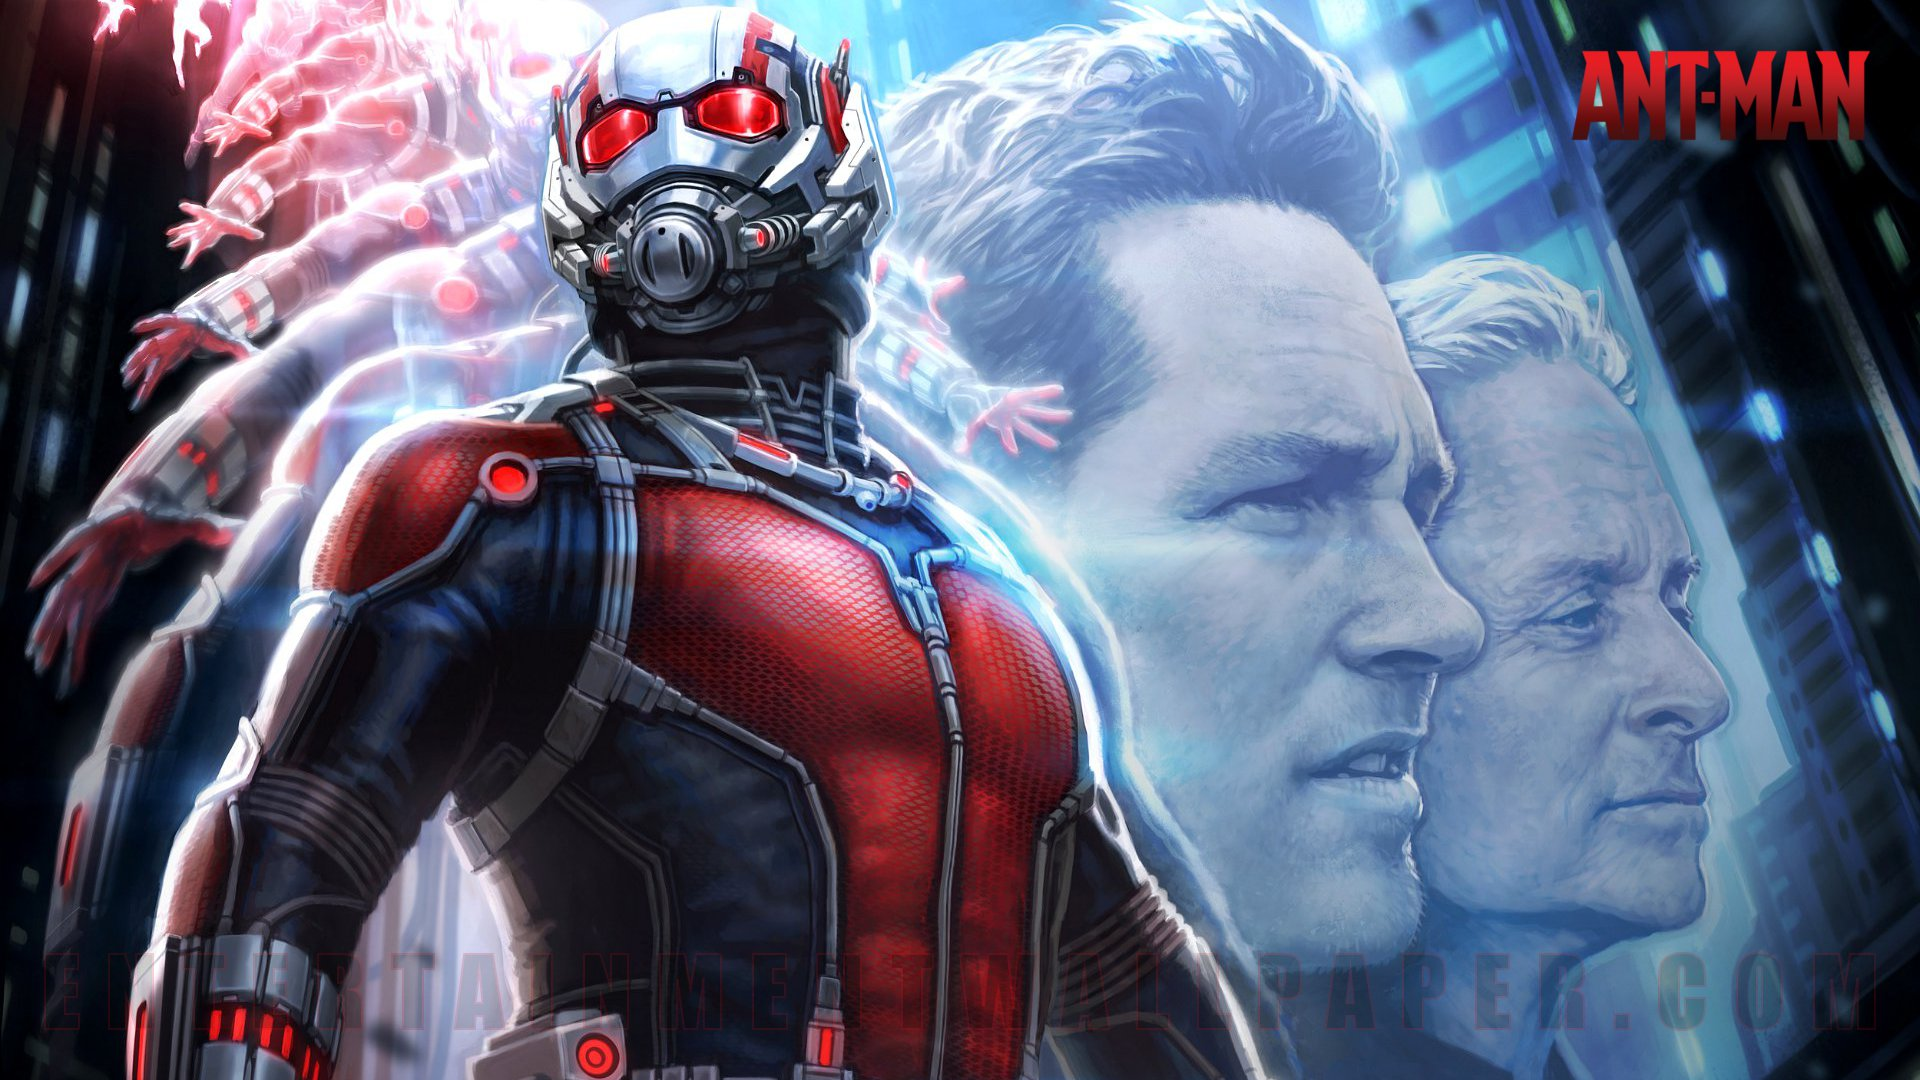 show ant man wallpaper 10044686 size 1920x1080 more ant man wallpaper 1920x1080